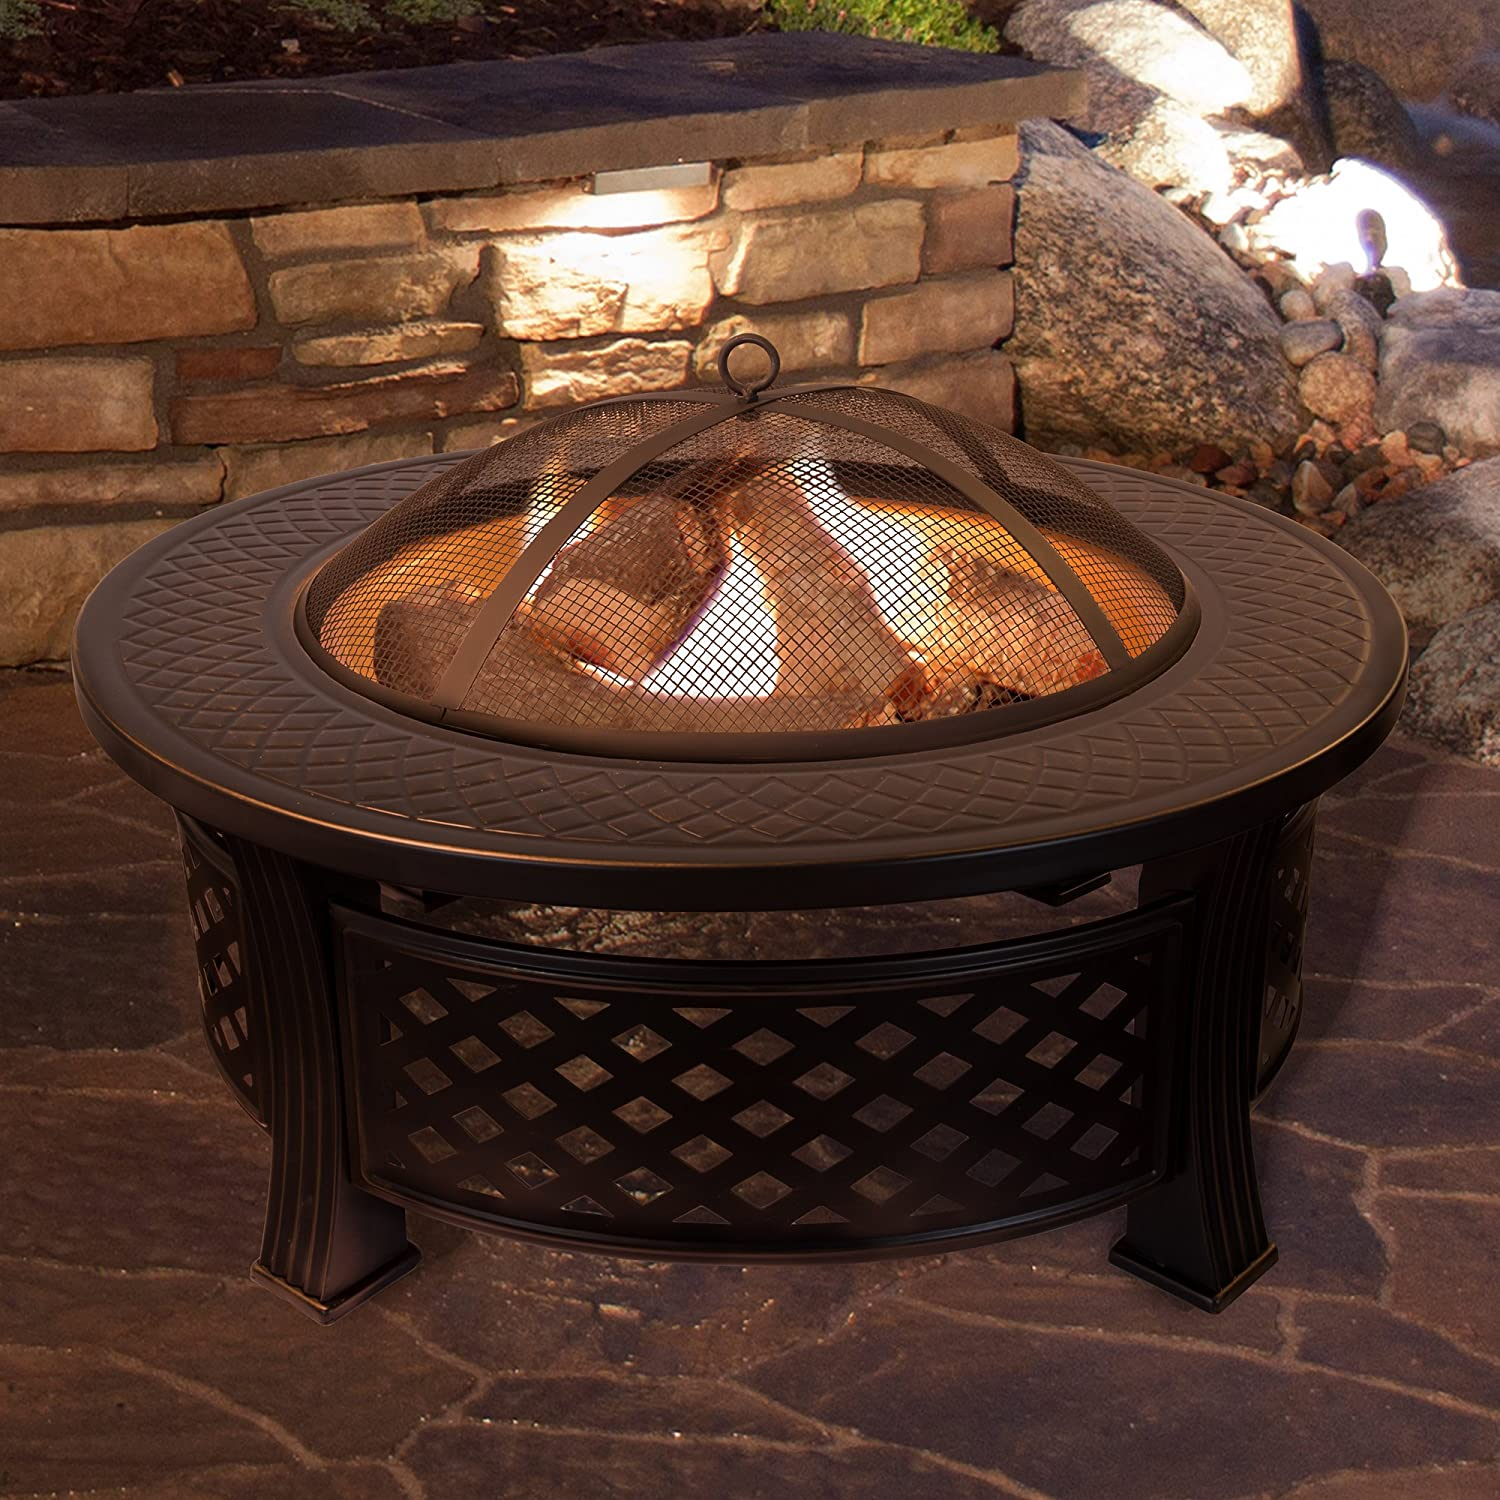 Amazon Com Fire Pit Set Wood Burning Pit Includes Spark Screen And Log Poker Great For Outdoor And Patio 32 Round Metal Firepit By Pure Garden Garden Outdoor